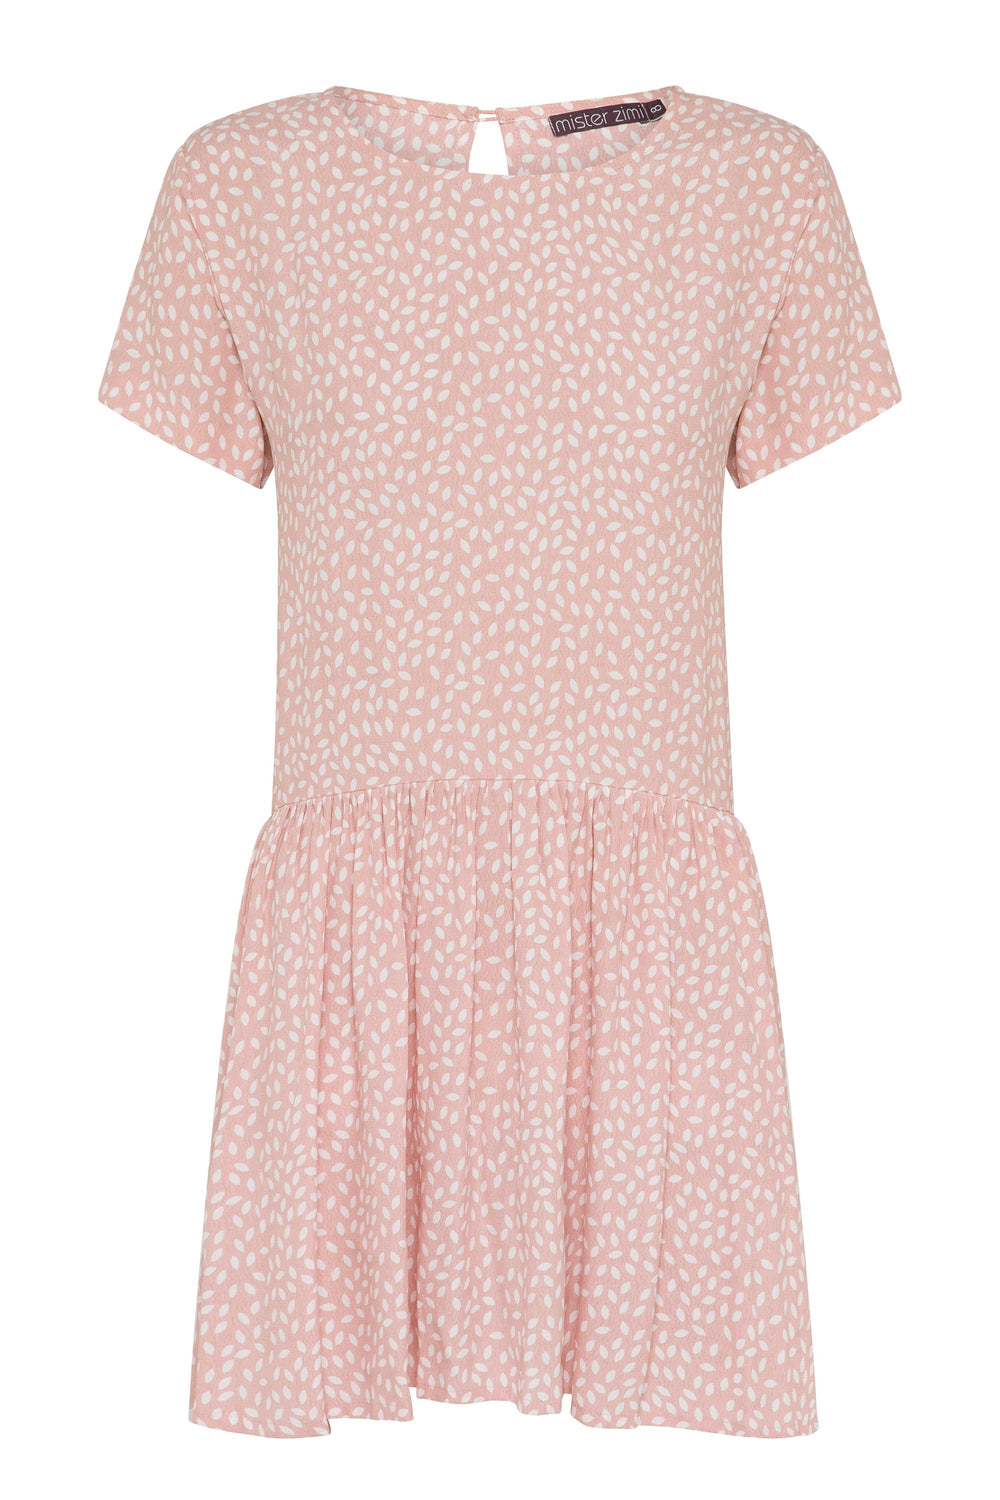 Summer Elsa Dress In Blossom